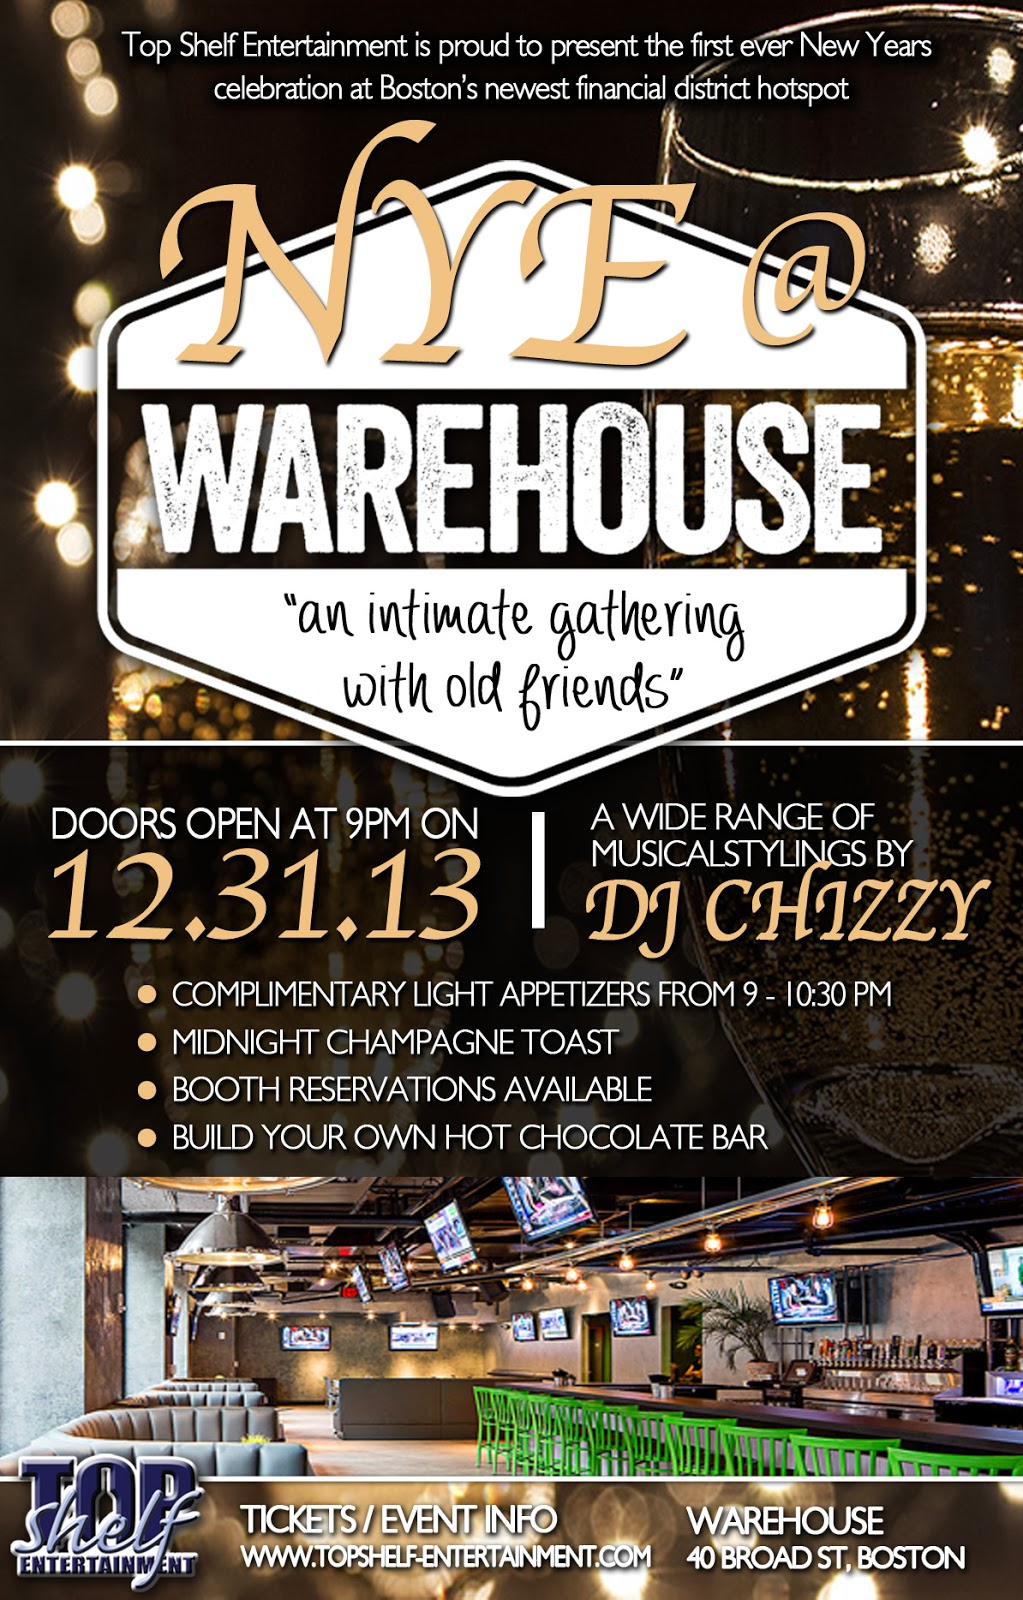 Top Shelf Entertainment Is Proud To Host The 1st Ever NYE Event At Bostonu0027s  Newest Financial District Hotspot.